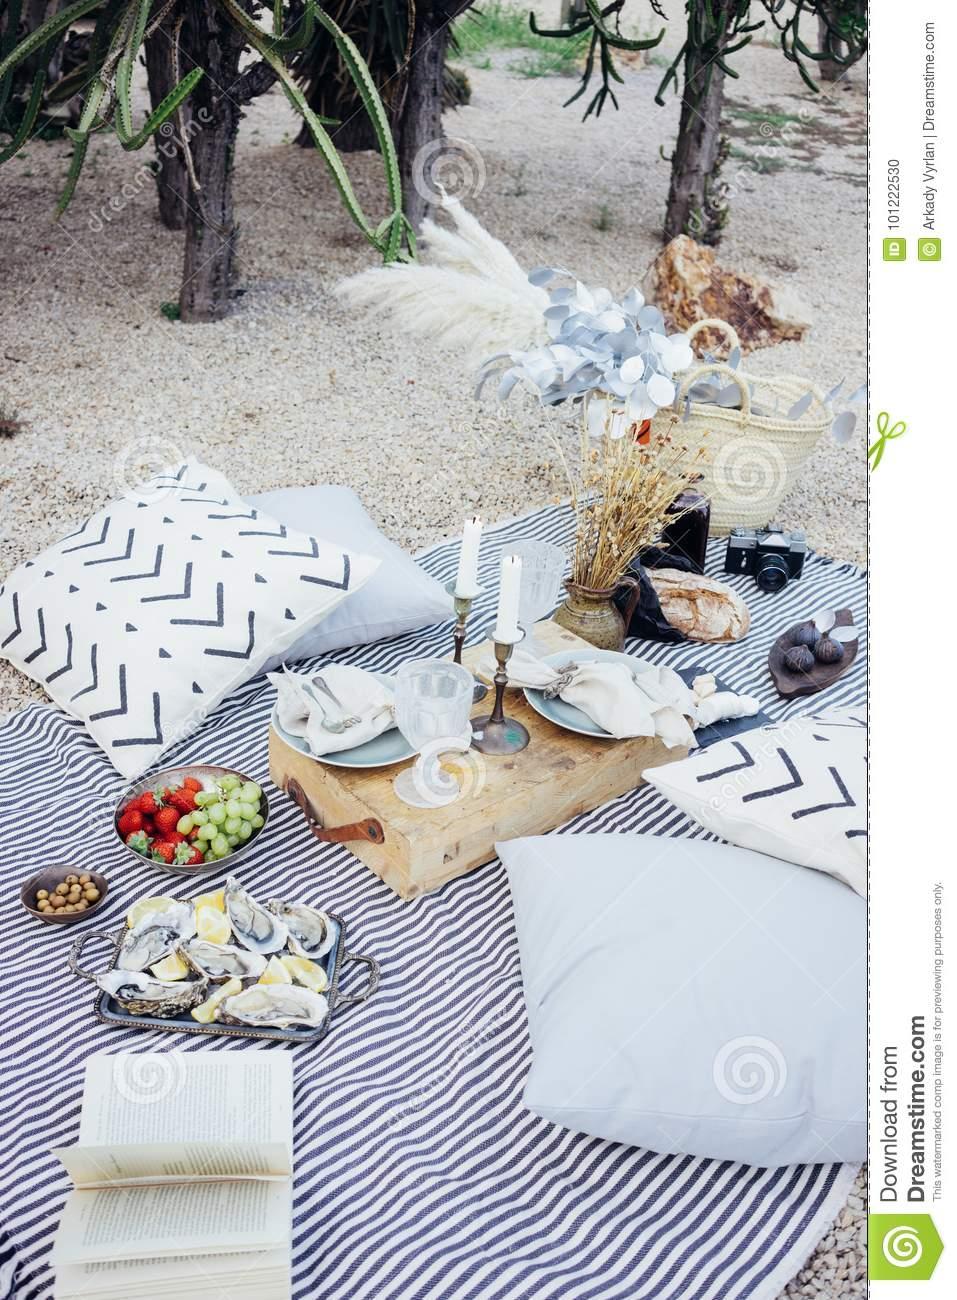 Picnic Decor Beautiful Setup Picnic Table Stock Photo Image Of Candle Decor